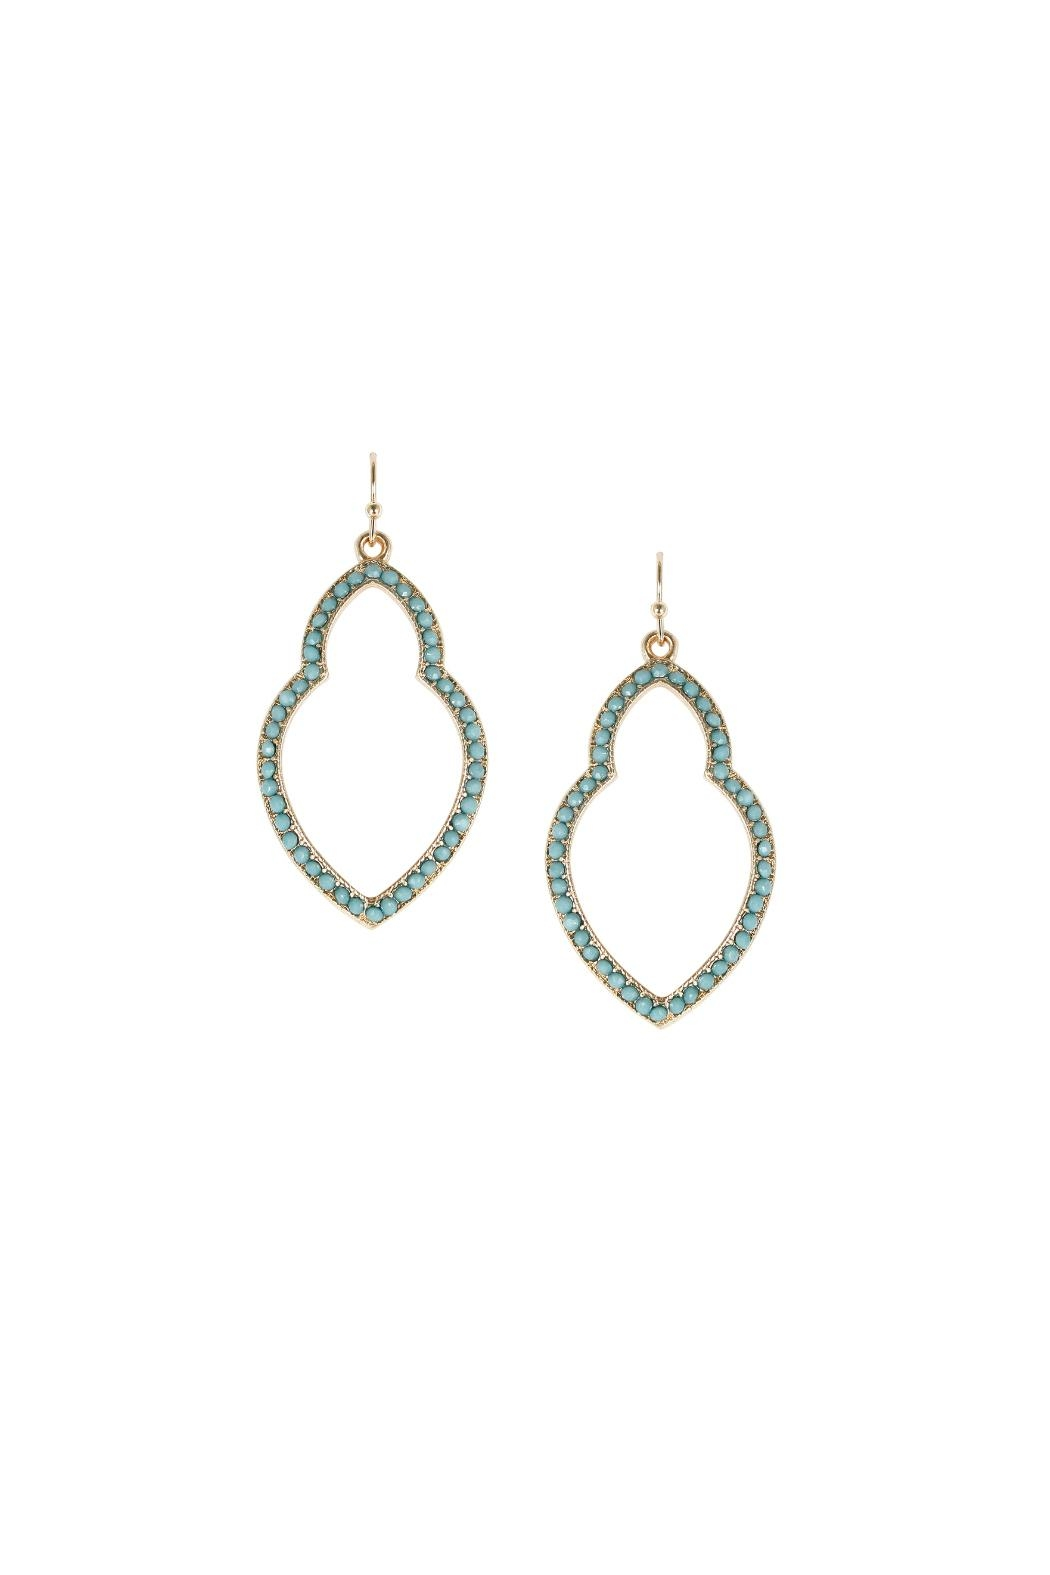 Marlyn Schiff Turquoise Moroccan Earrings - Main Image